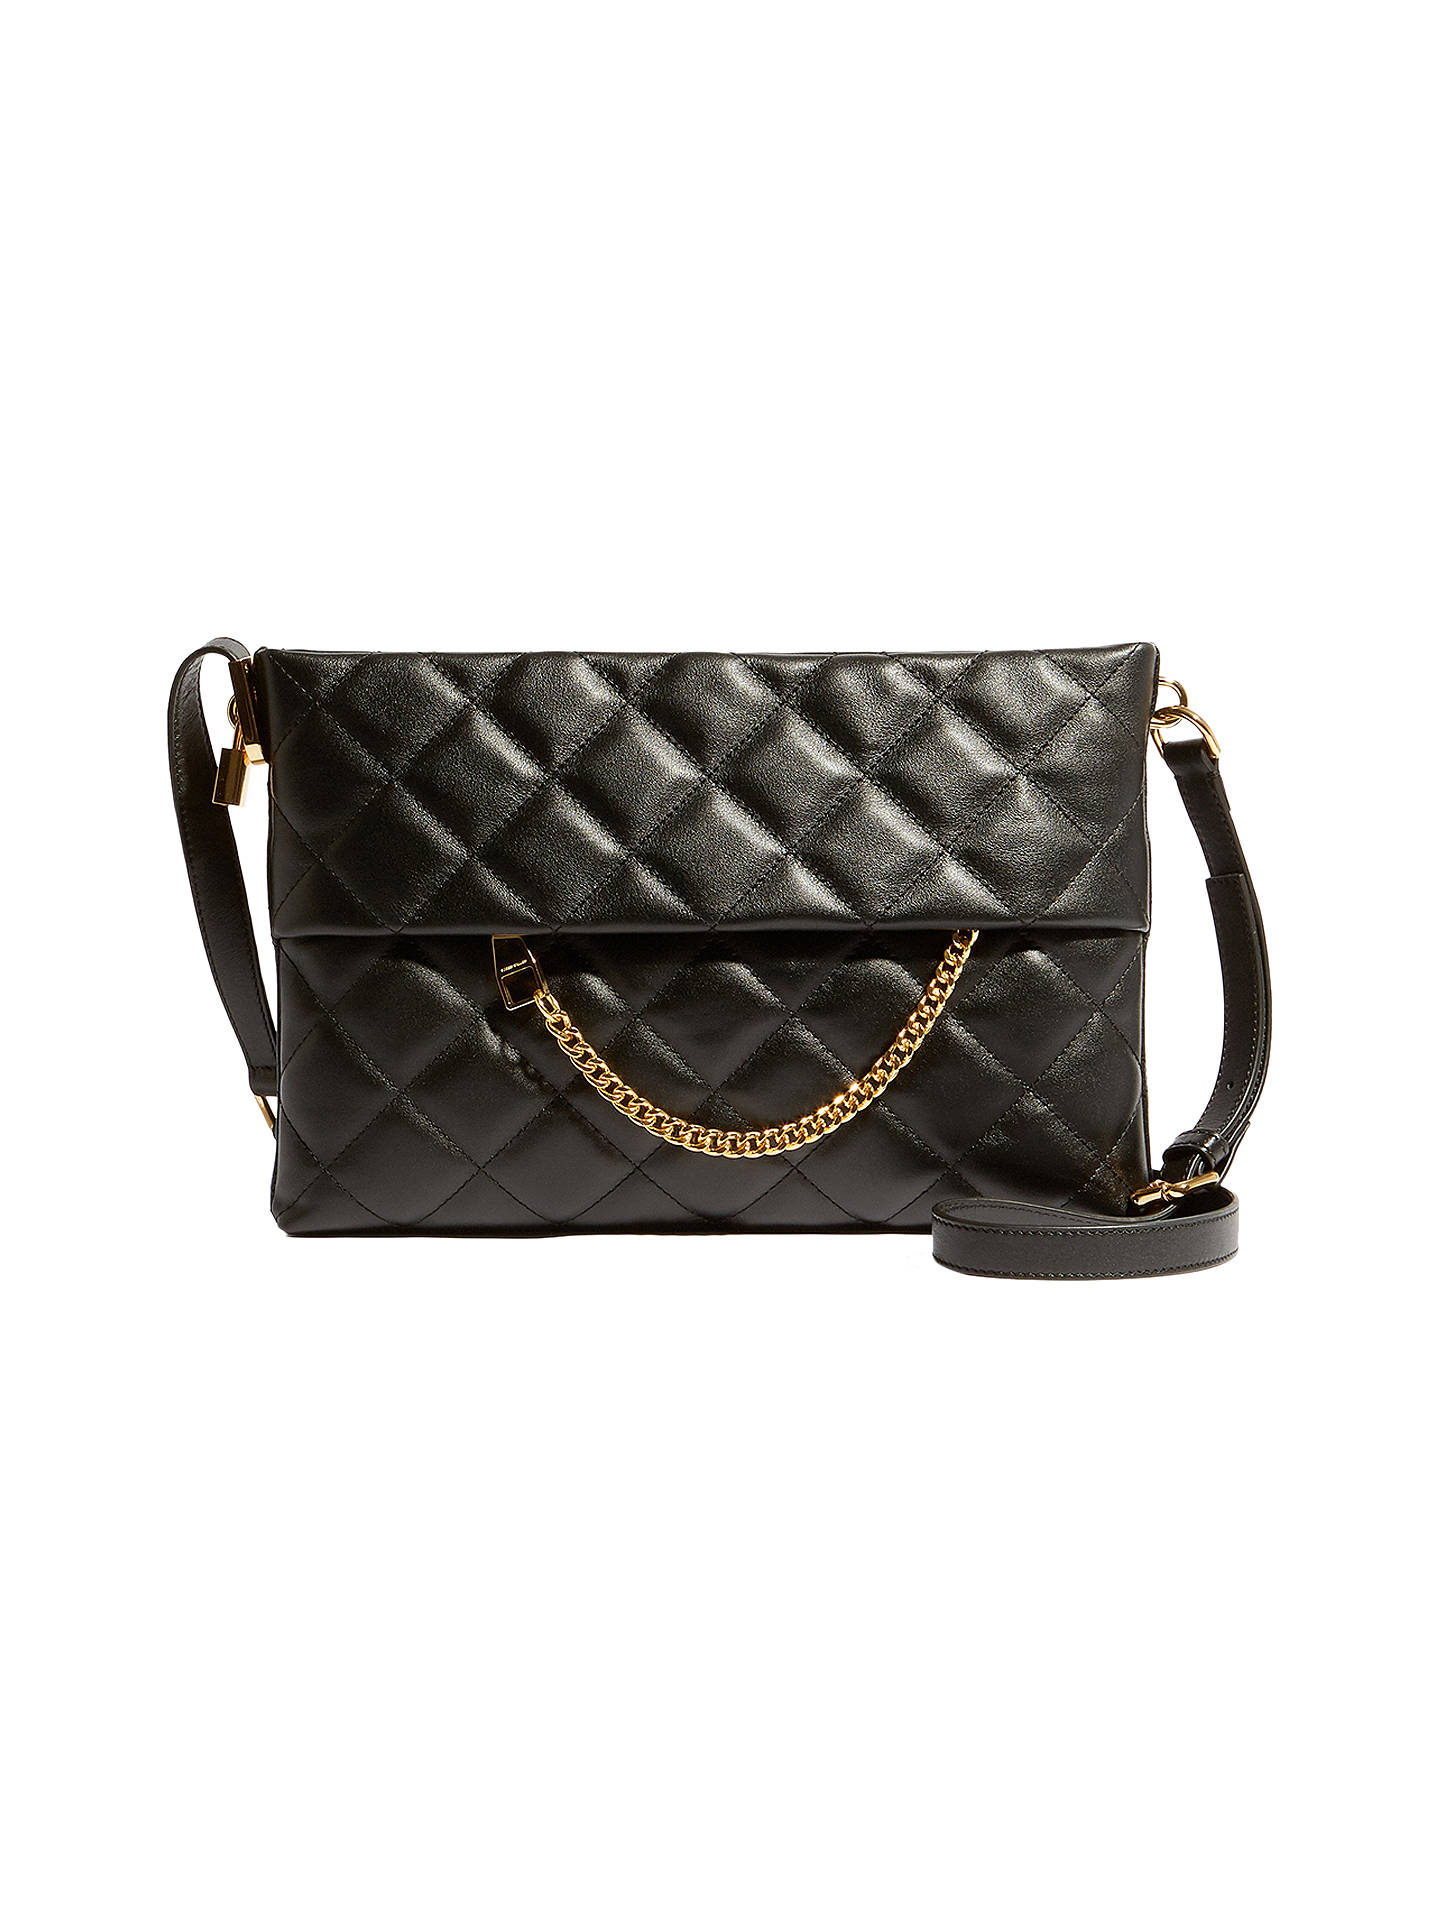 Karen Millen Leather Chain Zip Cross Body Bag Black Quilt Online At Johnlewis